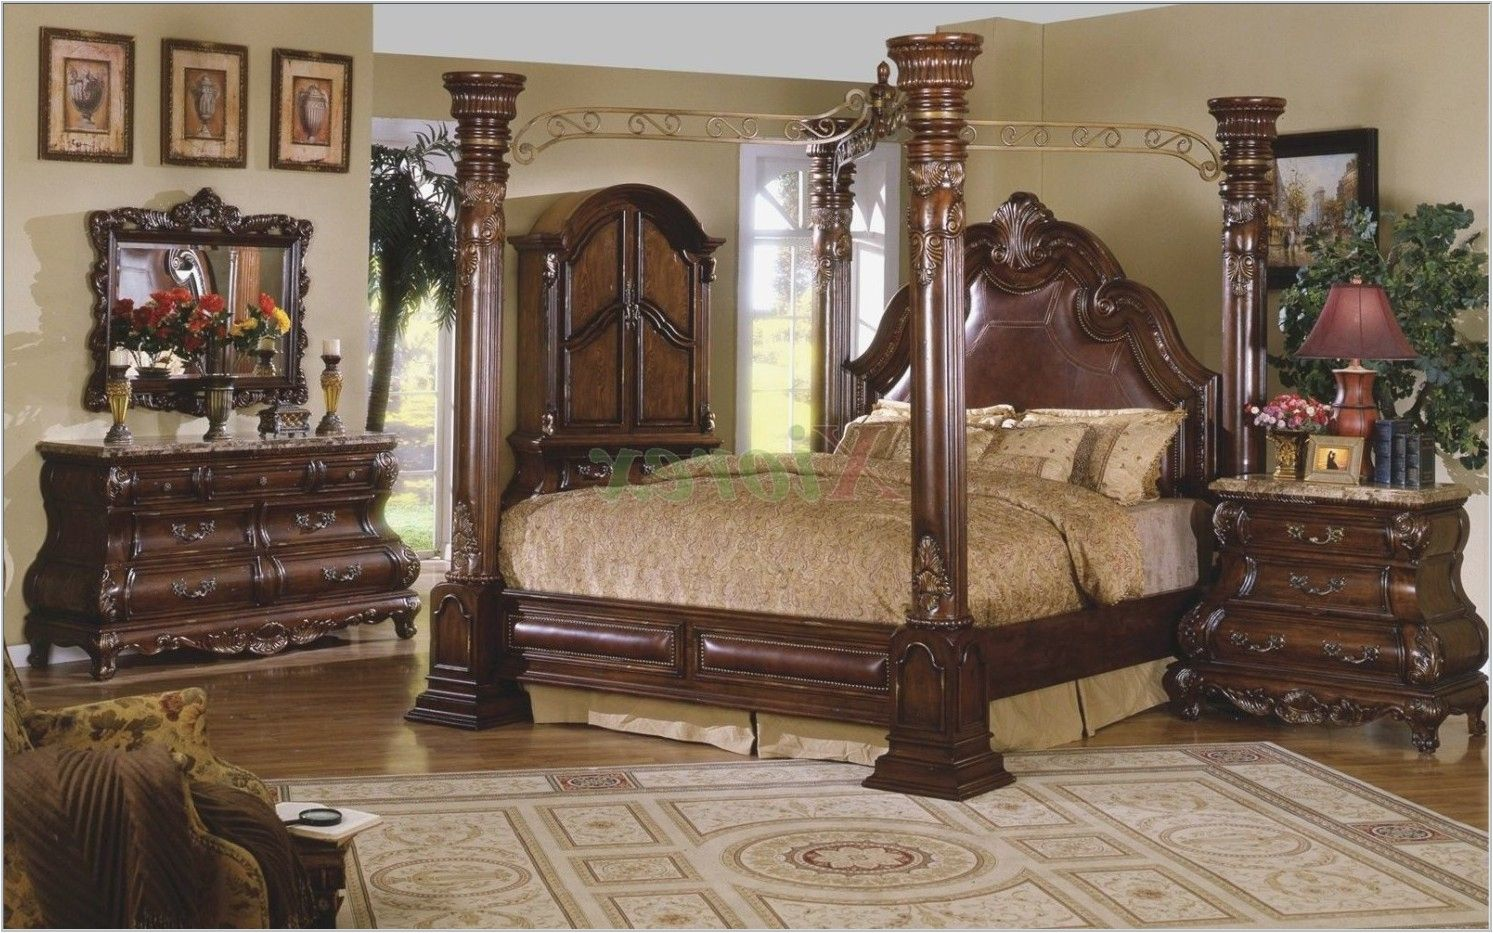 Raymour And Flanigan Outlet Bedroom Sets Canopy Bedroom Sets King Bedroom Sets Bedroom Sets Furniture King